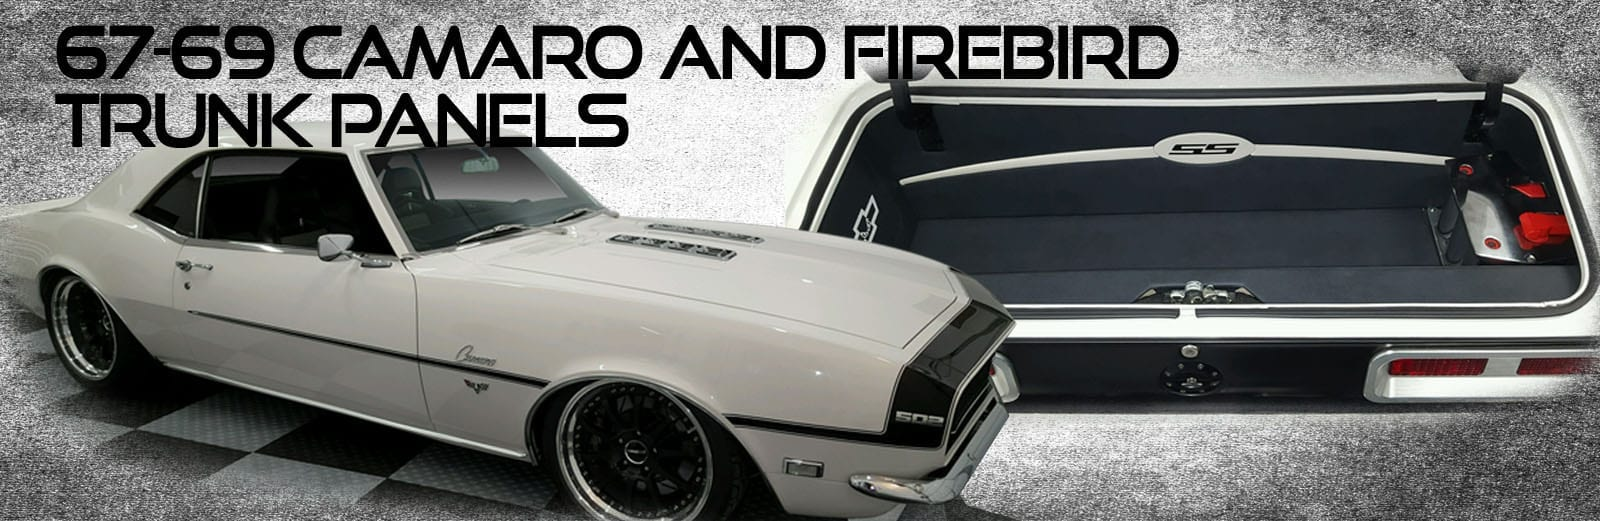 camaro and firebird trunk panels